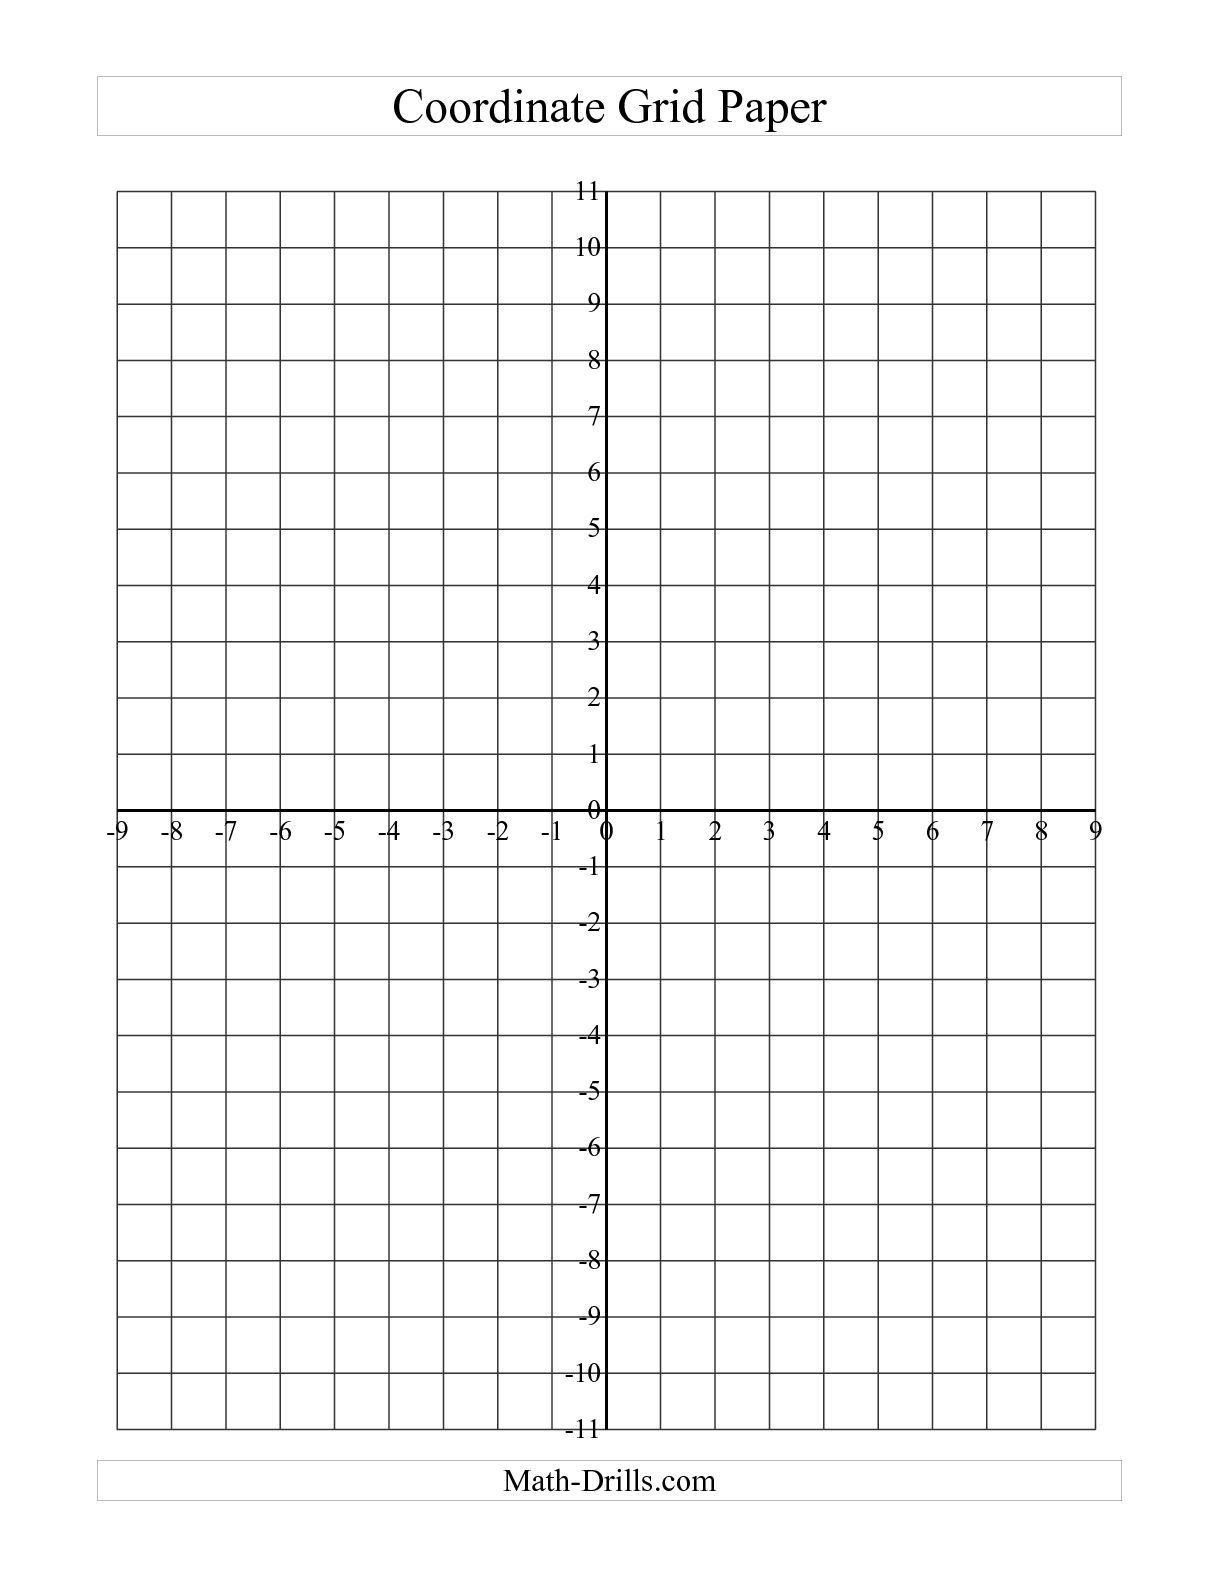 Coordinate Grid Worksheet 5th Grade Coordinate Grid Worksheets with Answers